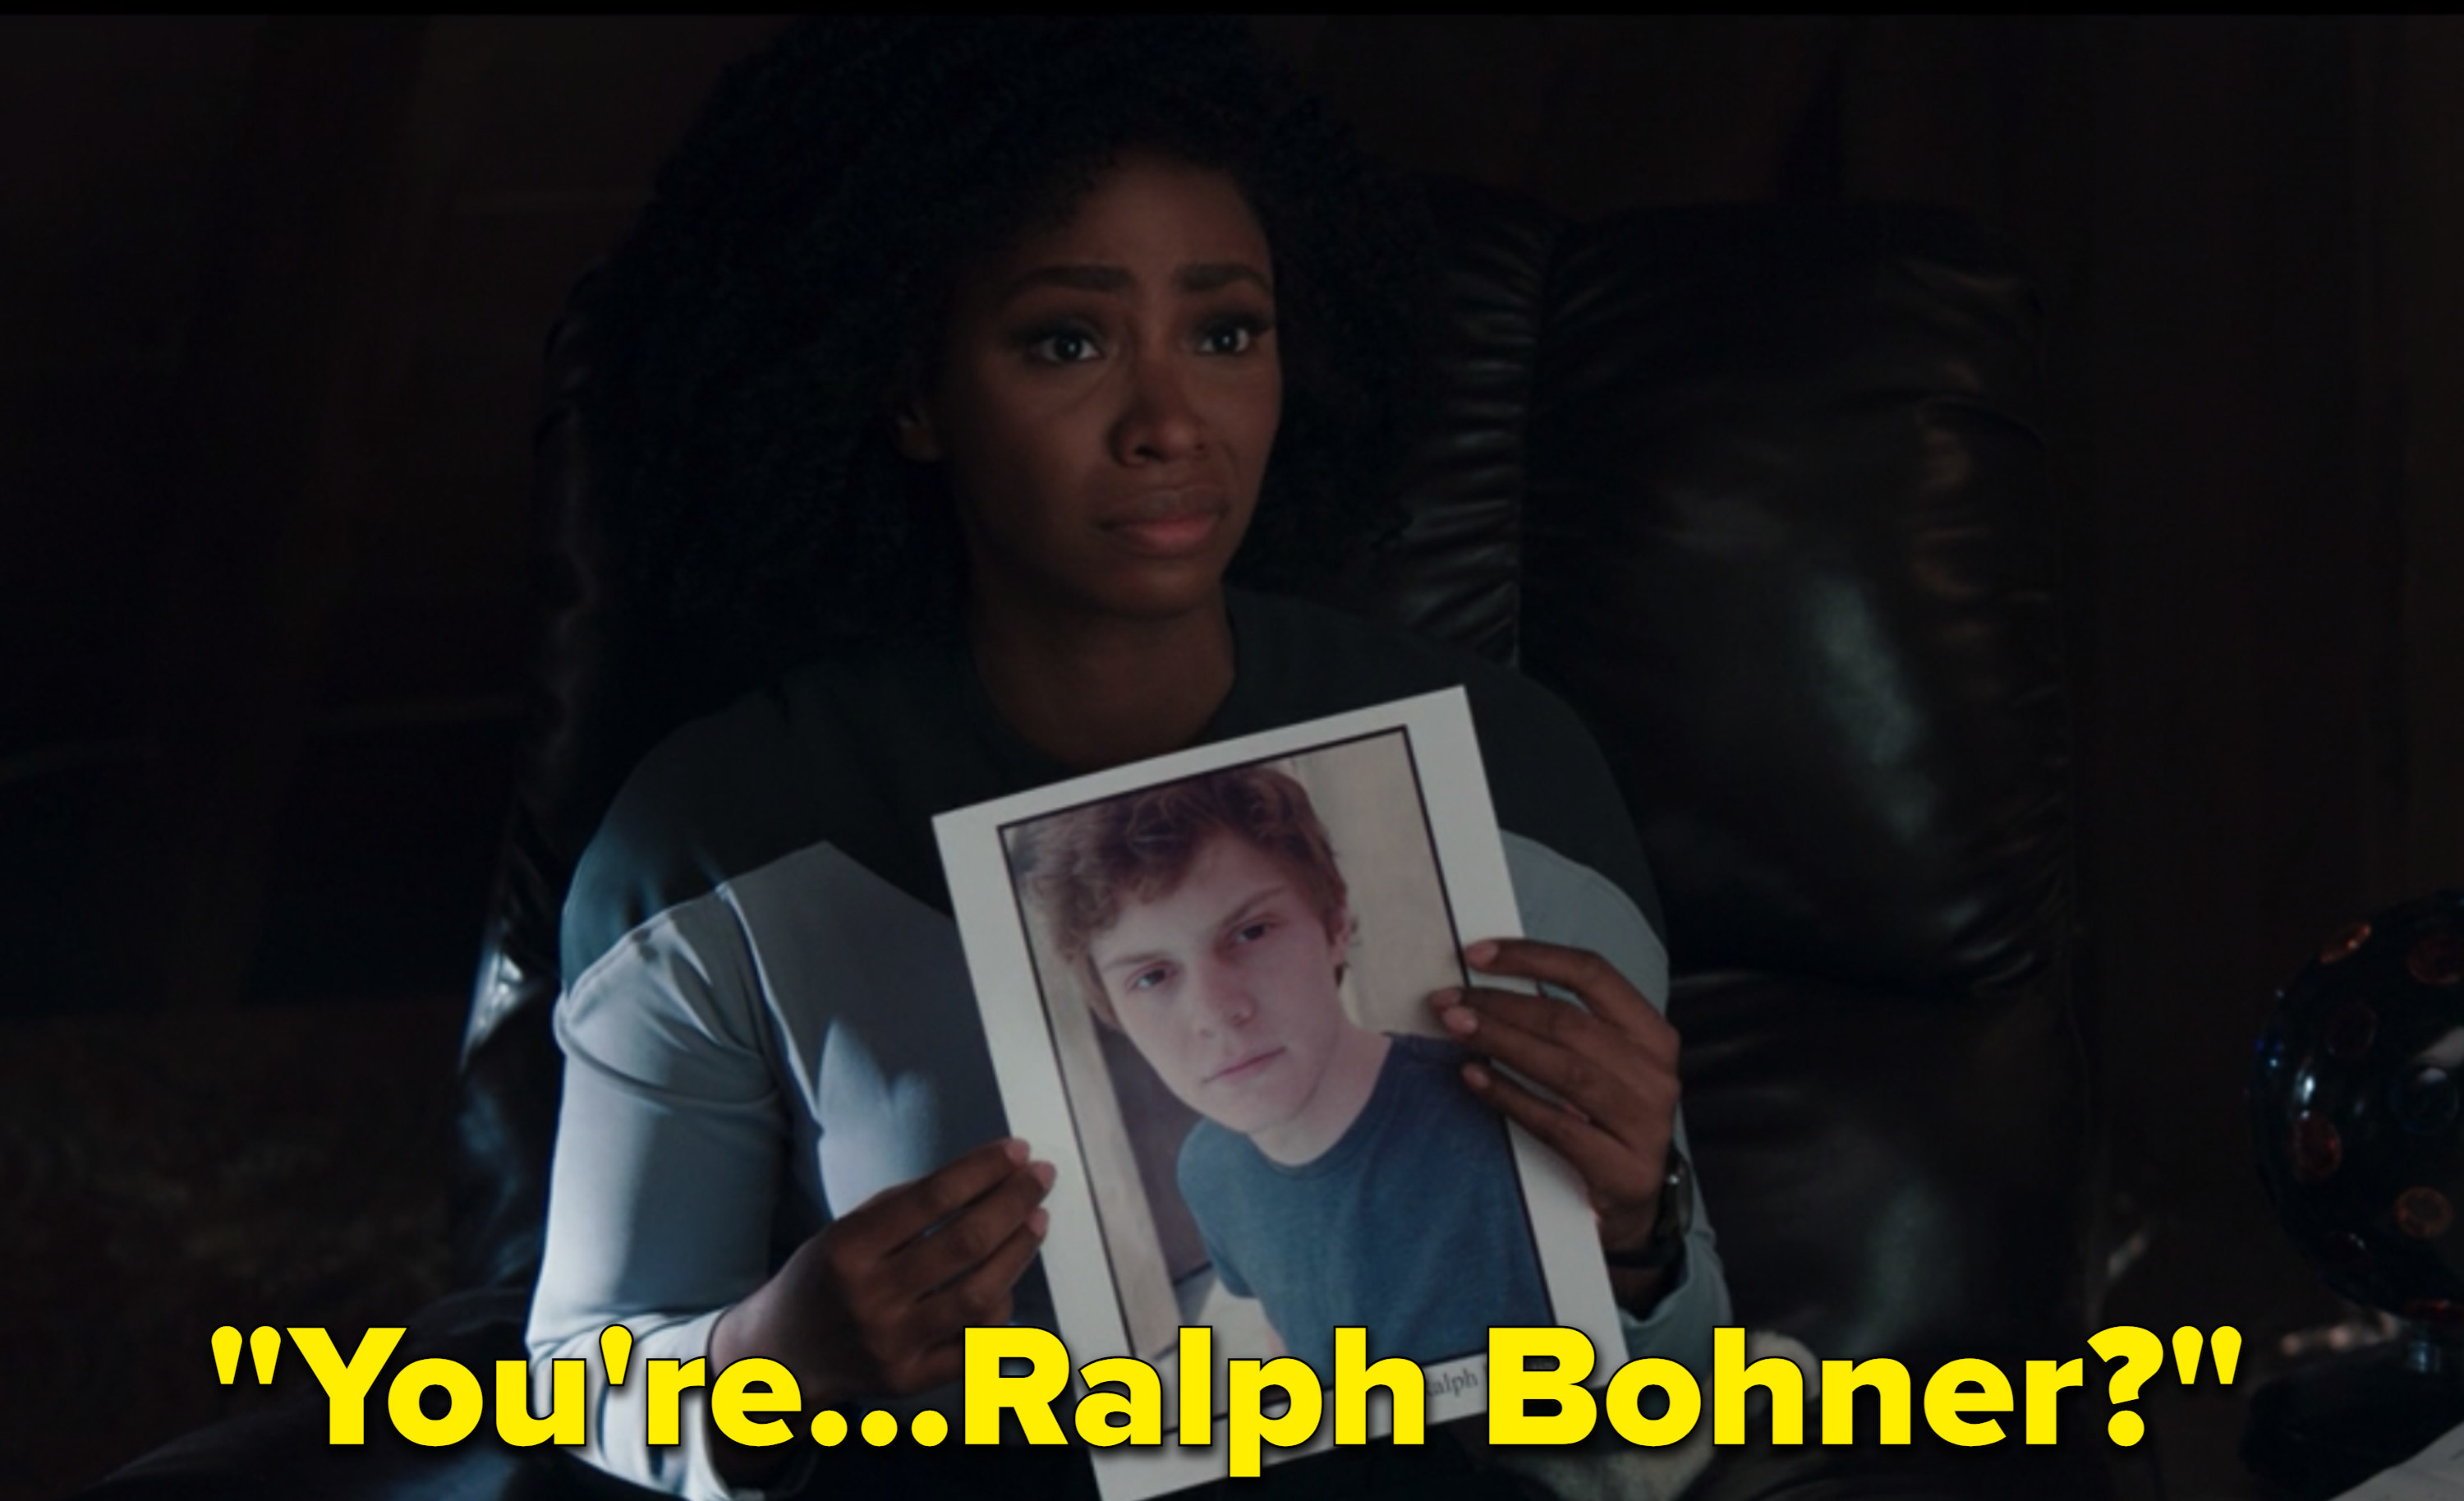 Monica Rambeau holds up a picture of Ralph Bohner, a teenager whose house Agatha took over in Westview.